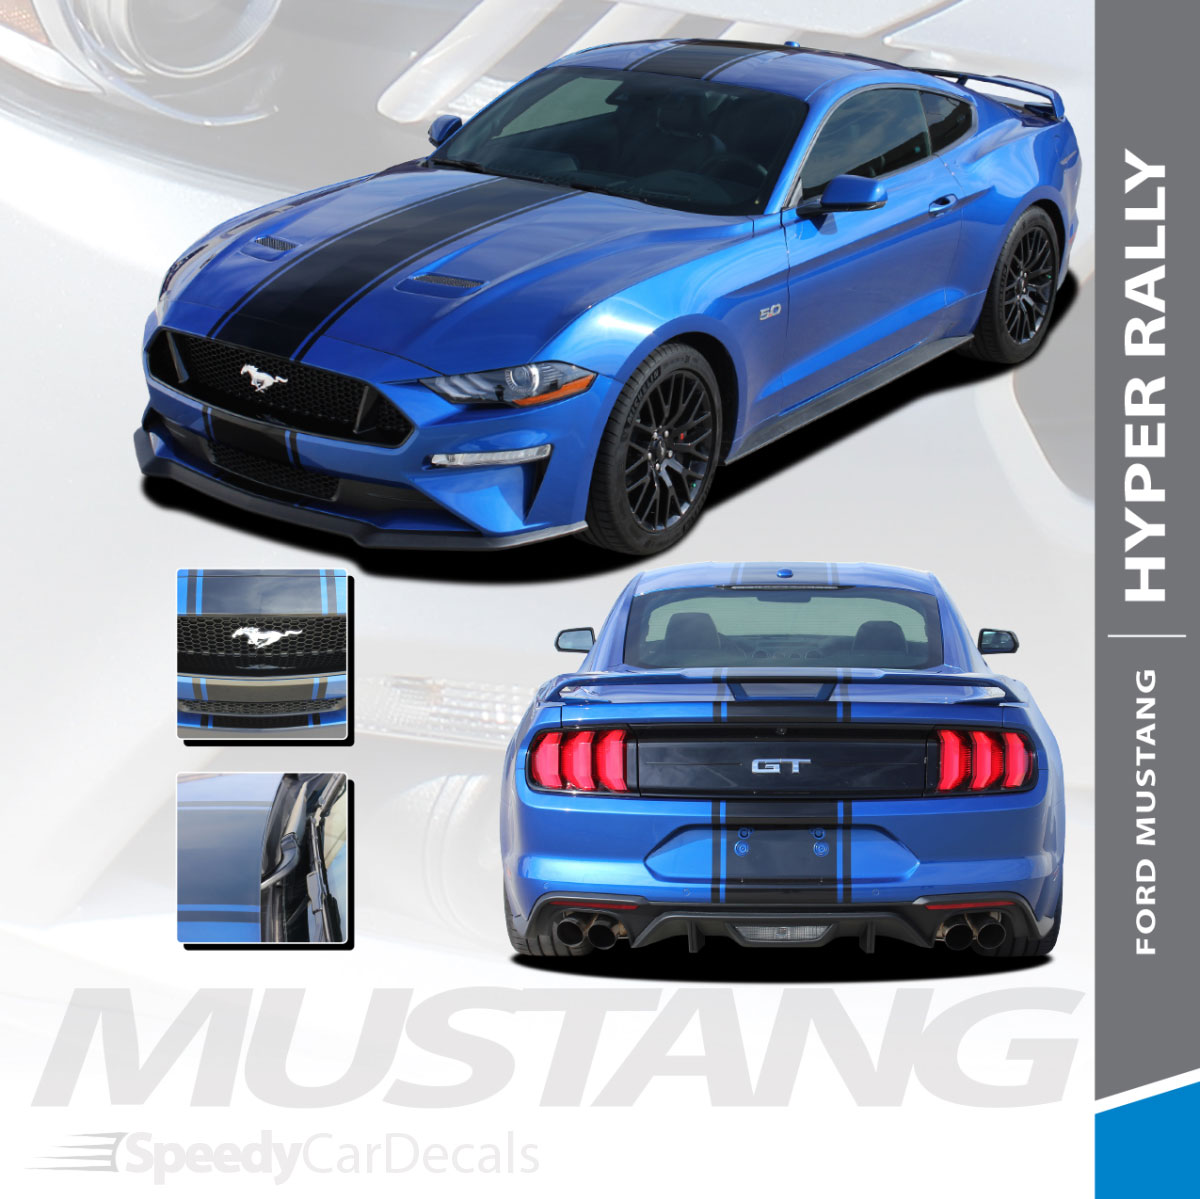 cc7b538773c30f ... HYPER RALLY   2018 Ford Mustang Stripes Euro Style Center Wide Racing  Stripes Vinyl Graphics Kit ...